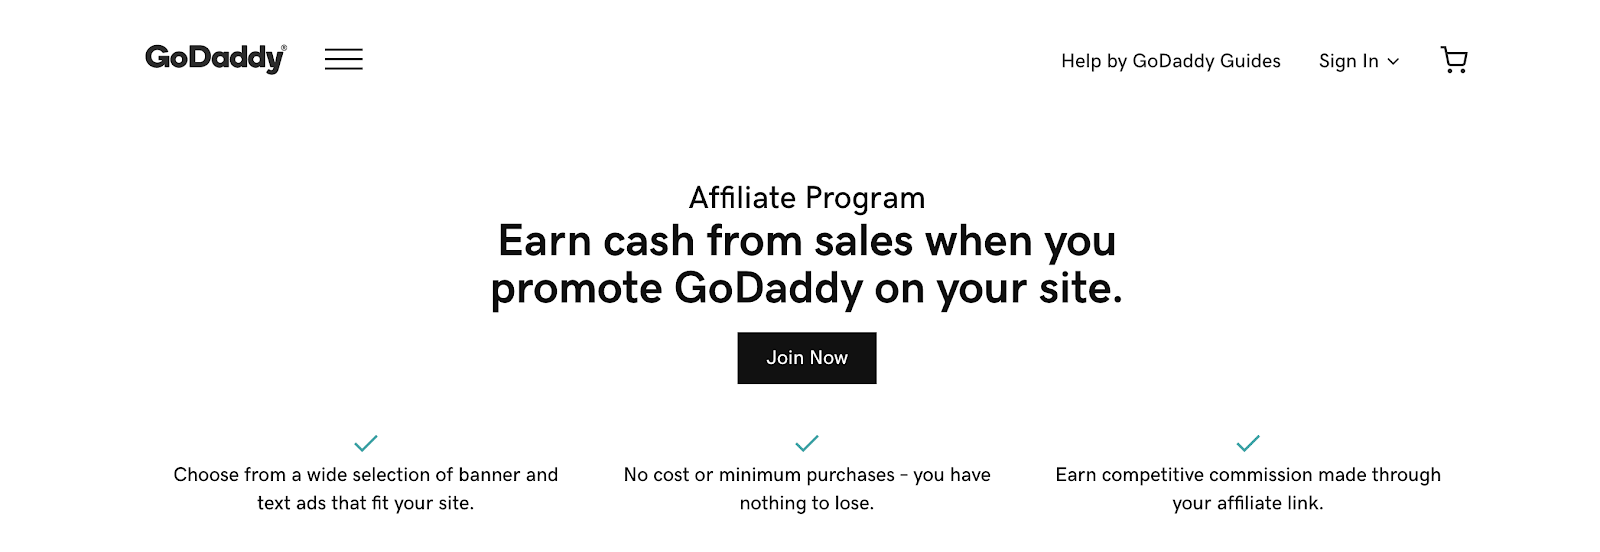 GoDaddy Affiliate Program Landing Page (Screenshot)